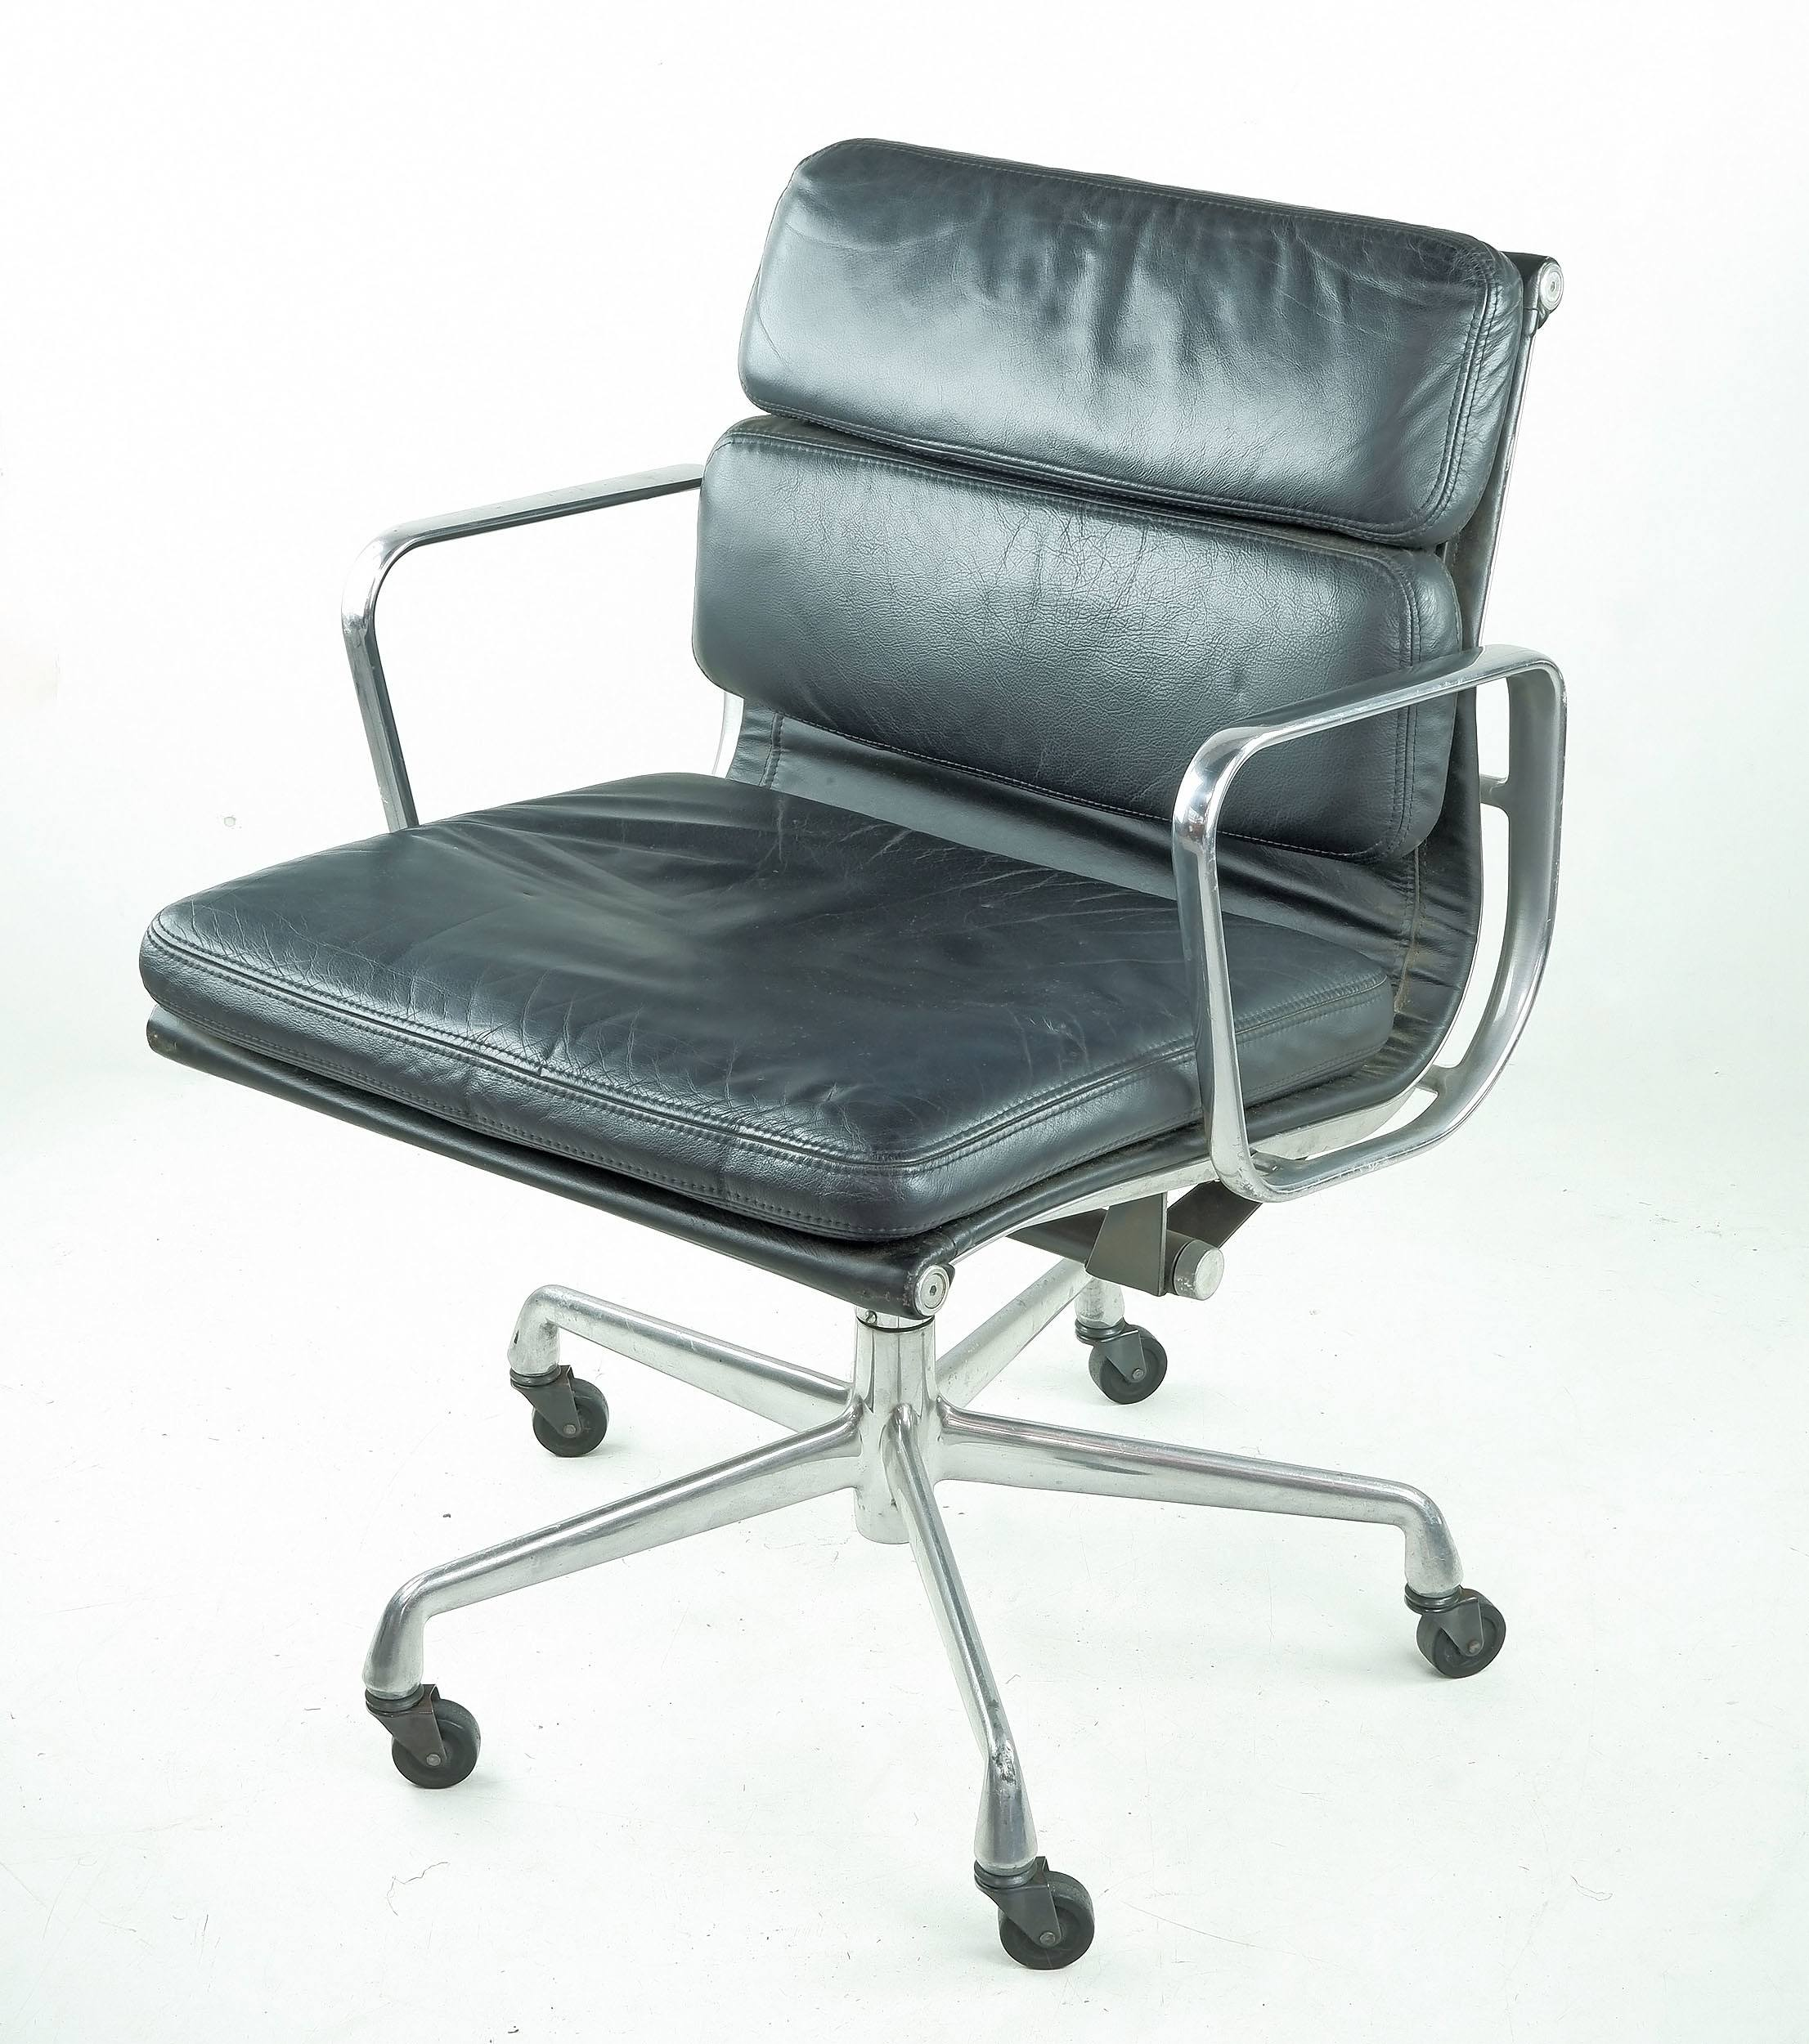 'Genuine Eames Soft Pad Chair Manufactured by Herman Miller'